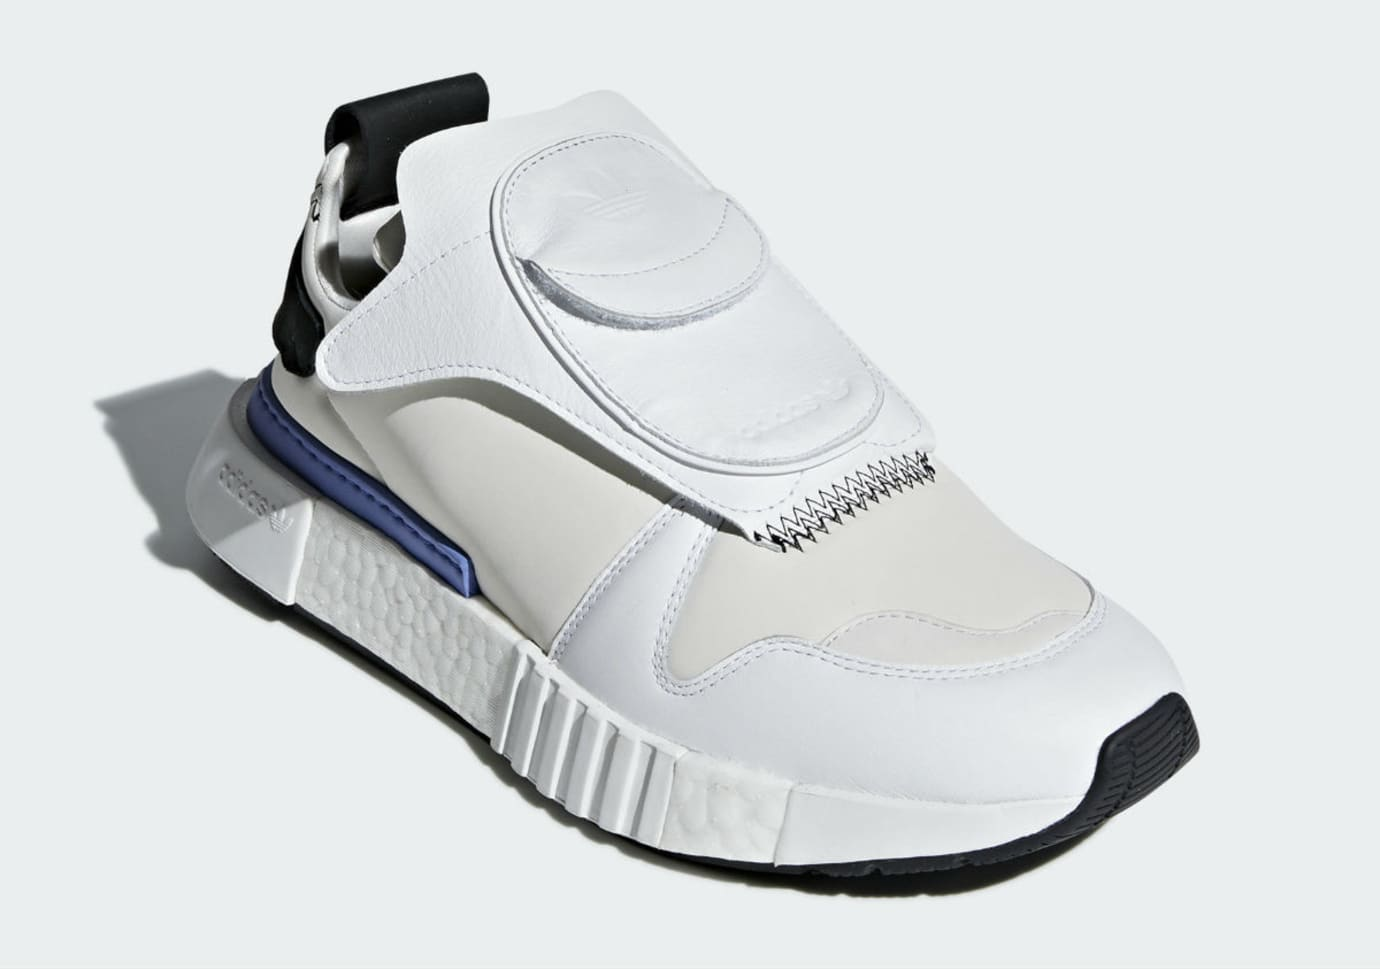 Adidas Futurepacer Grey One White Core Black Release Date AQ0907 Front